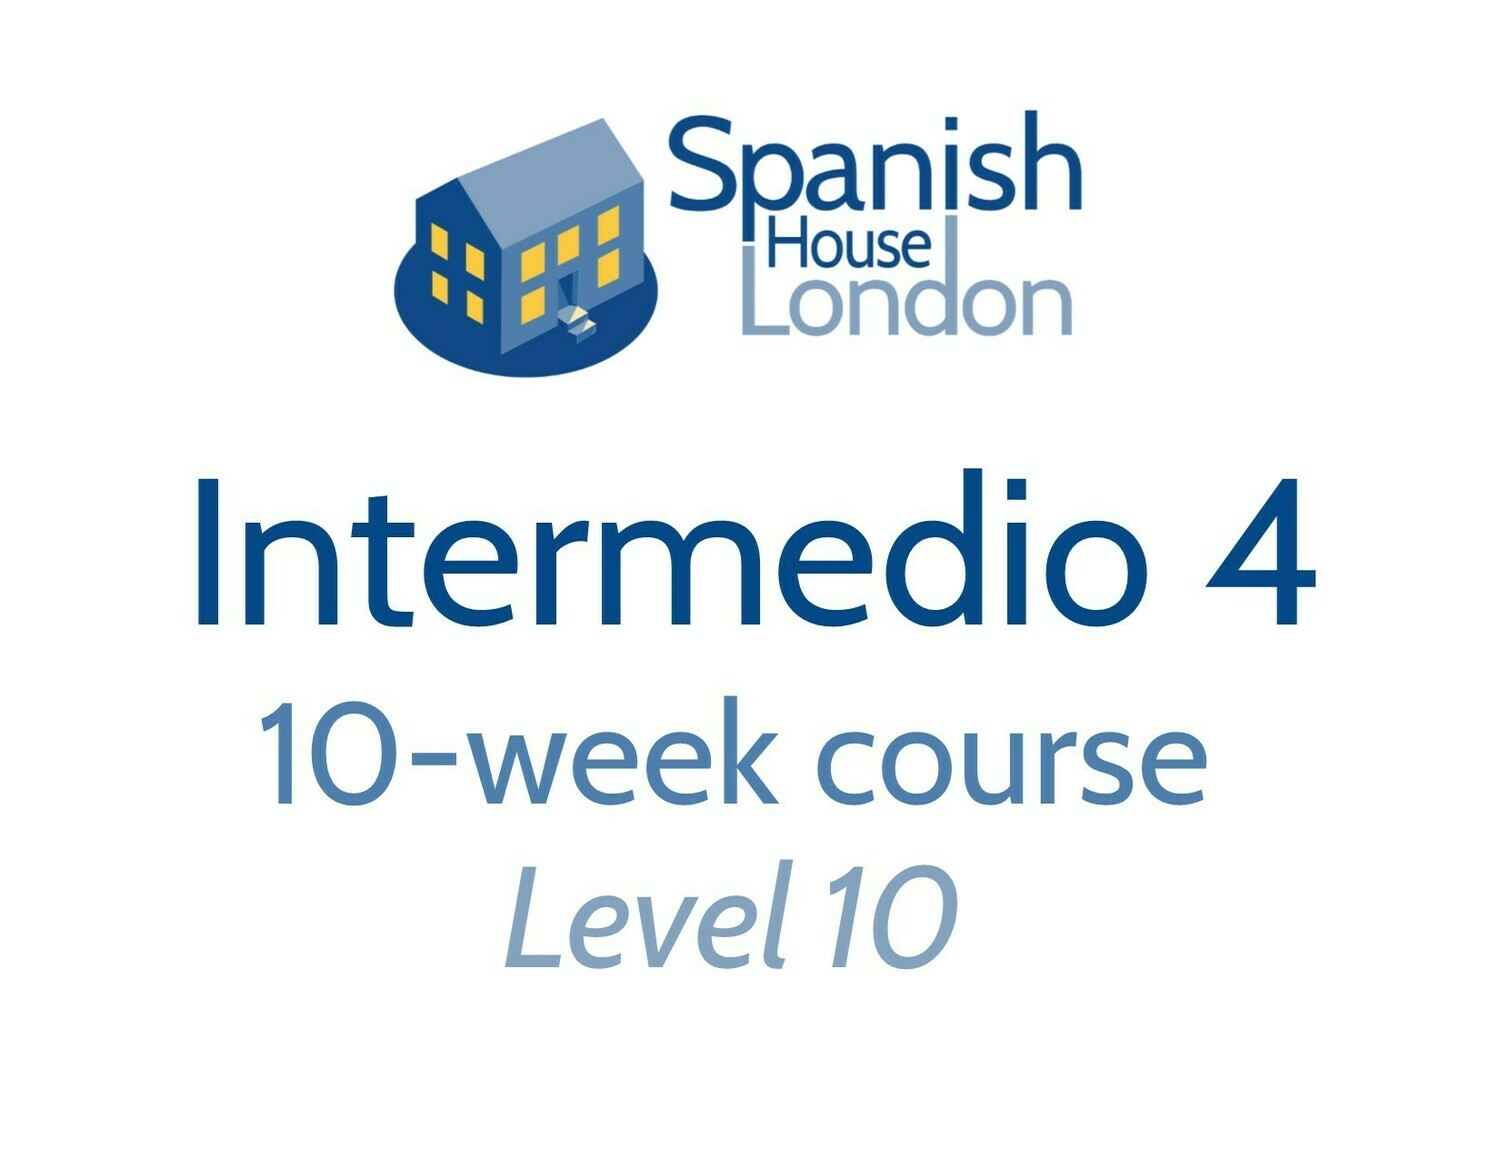 Intermedio 4 Course starting on 17th February at 7.30pm